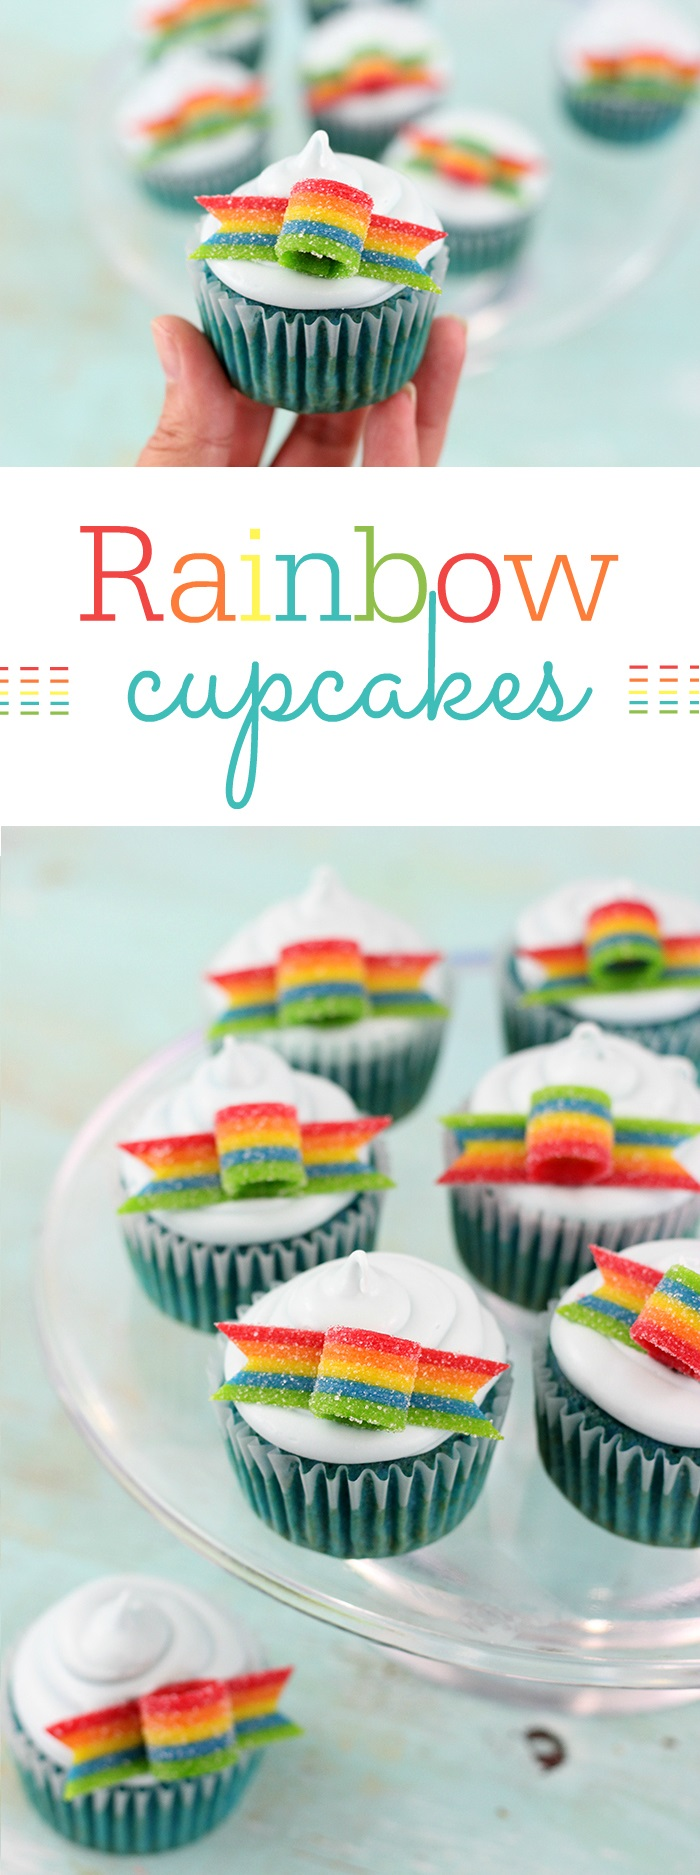 Can U Make Cupcakes With Cake Mix